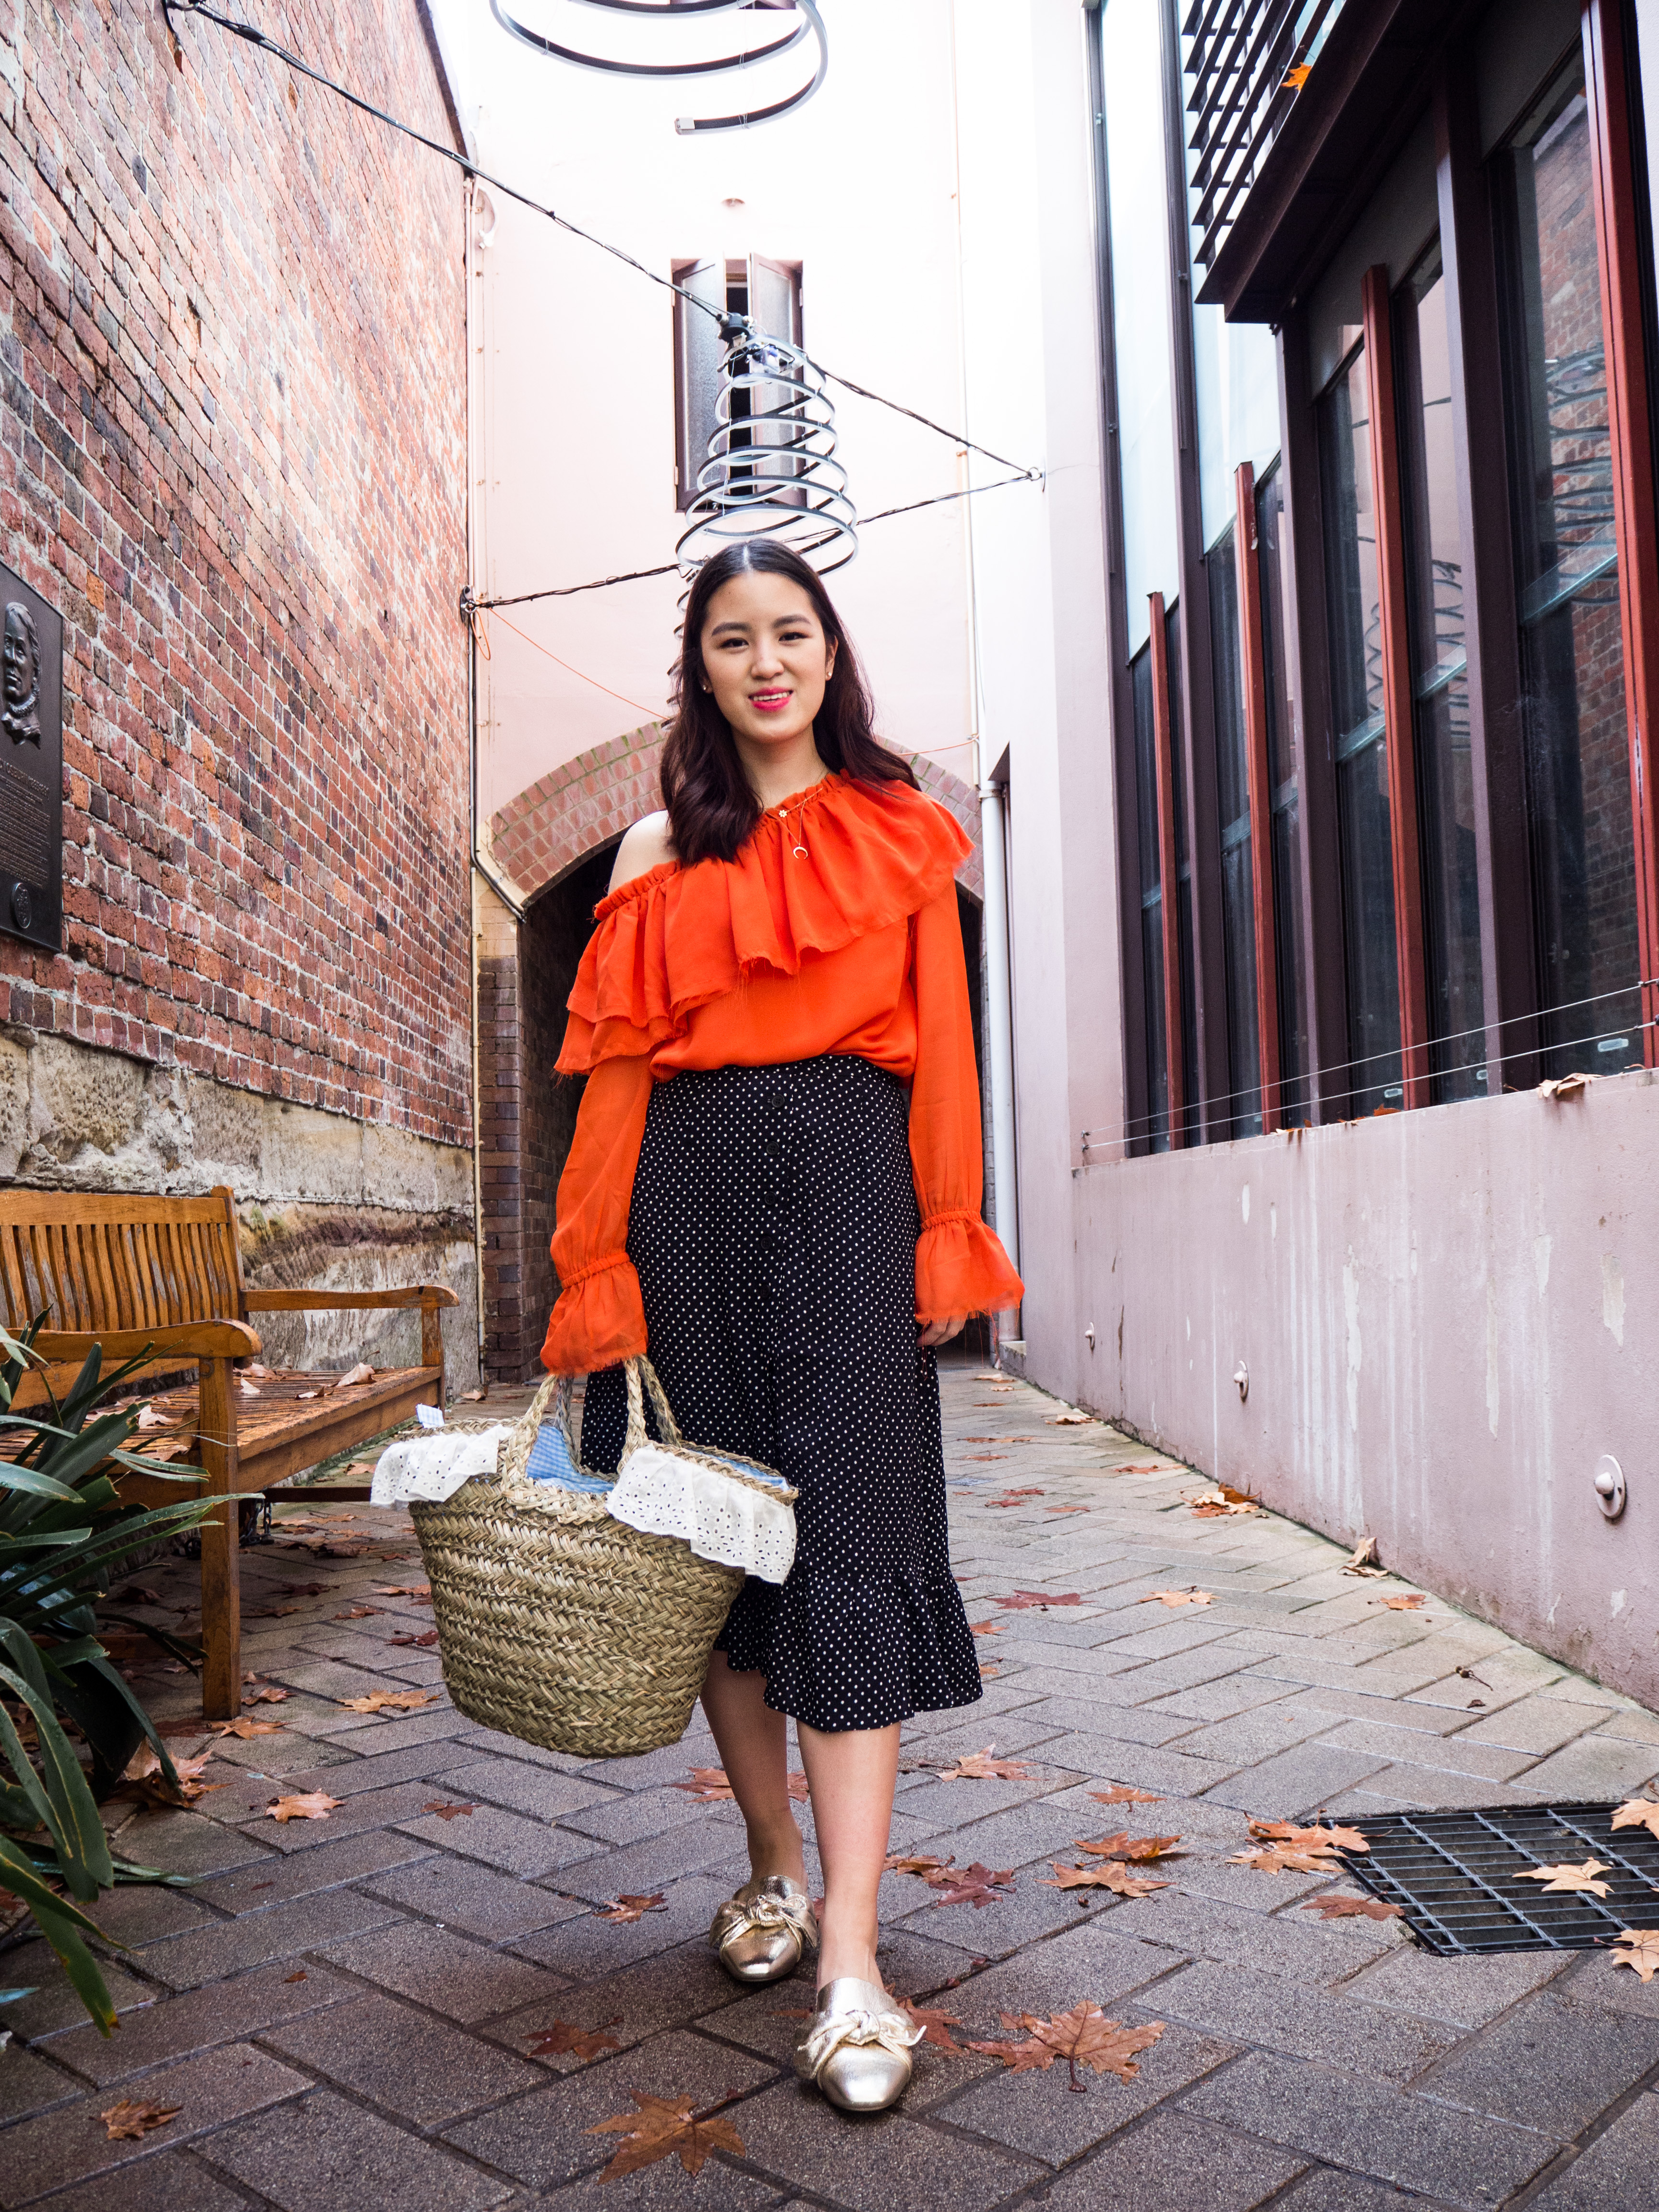 how I style, statement, trends, fashion, 2017, what to wear, boring wardrobe, colour, sydney blogger, blogger, styleblogger, fashion blogger, lumieredhelen, lumiere d'helen, ootd, outfit ideas, spring, summer, winter, autumn, minimal wardrobe, five piece french wardrobe, neutrals